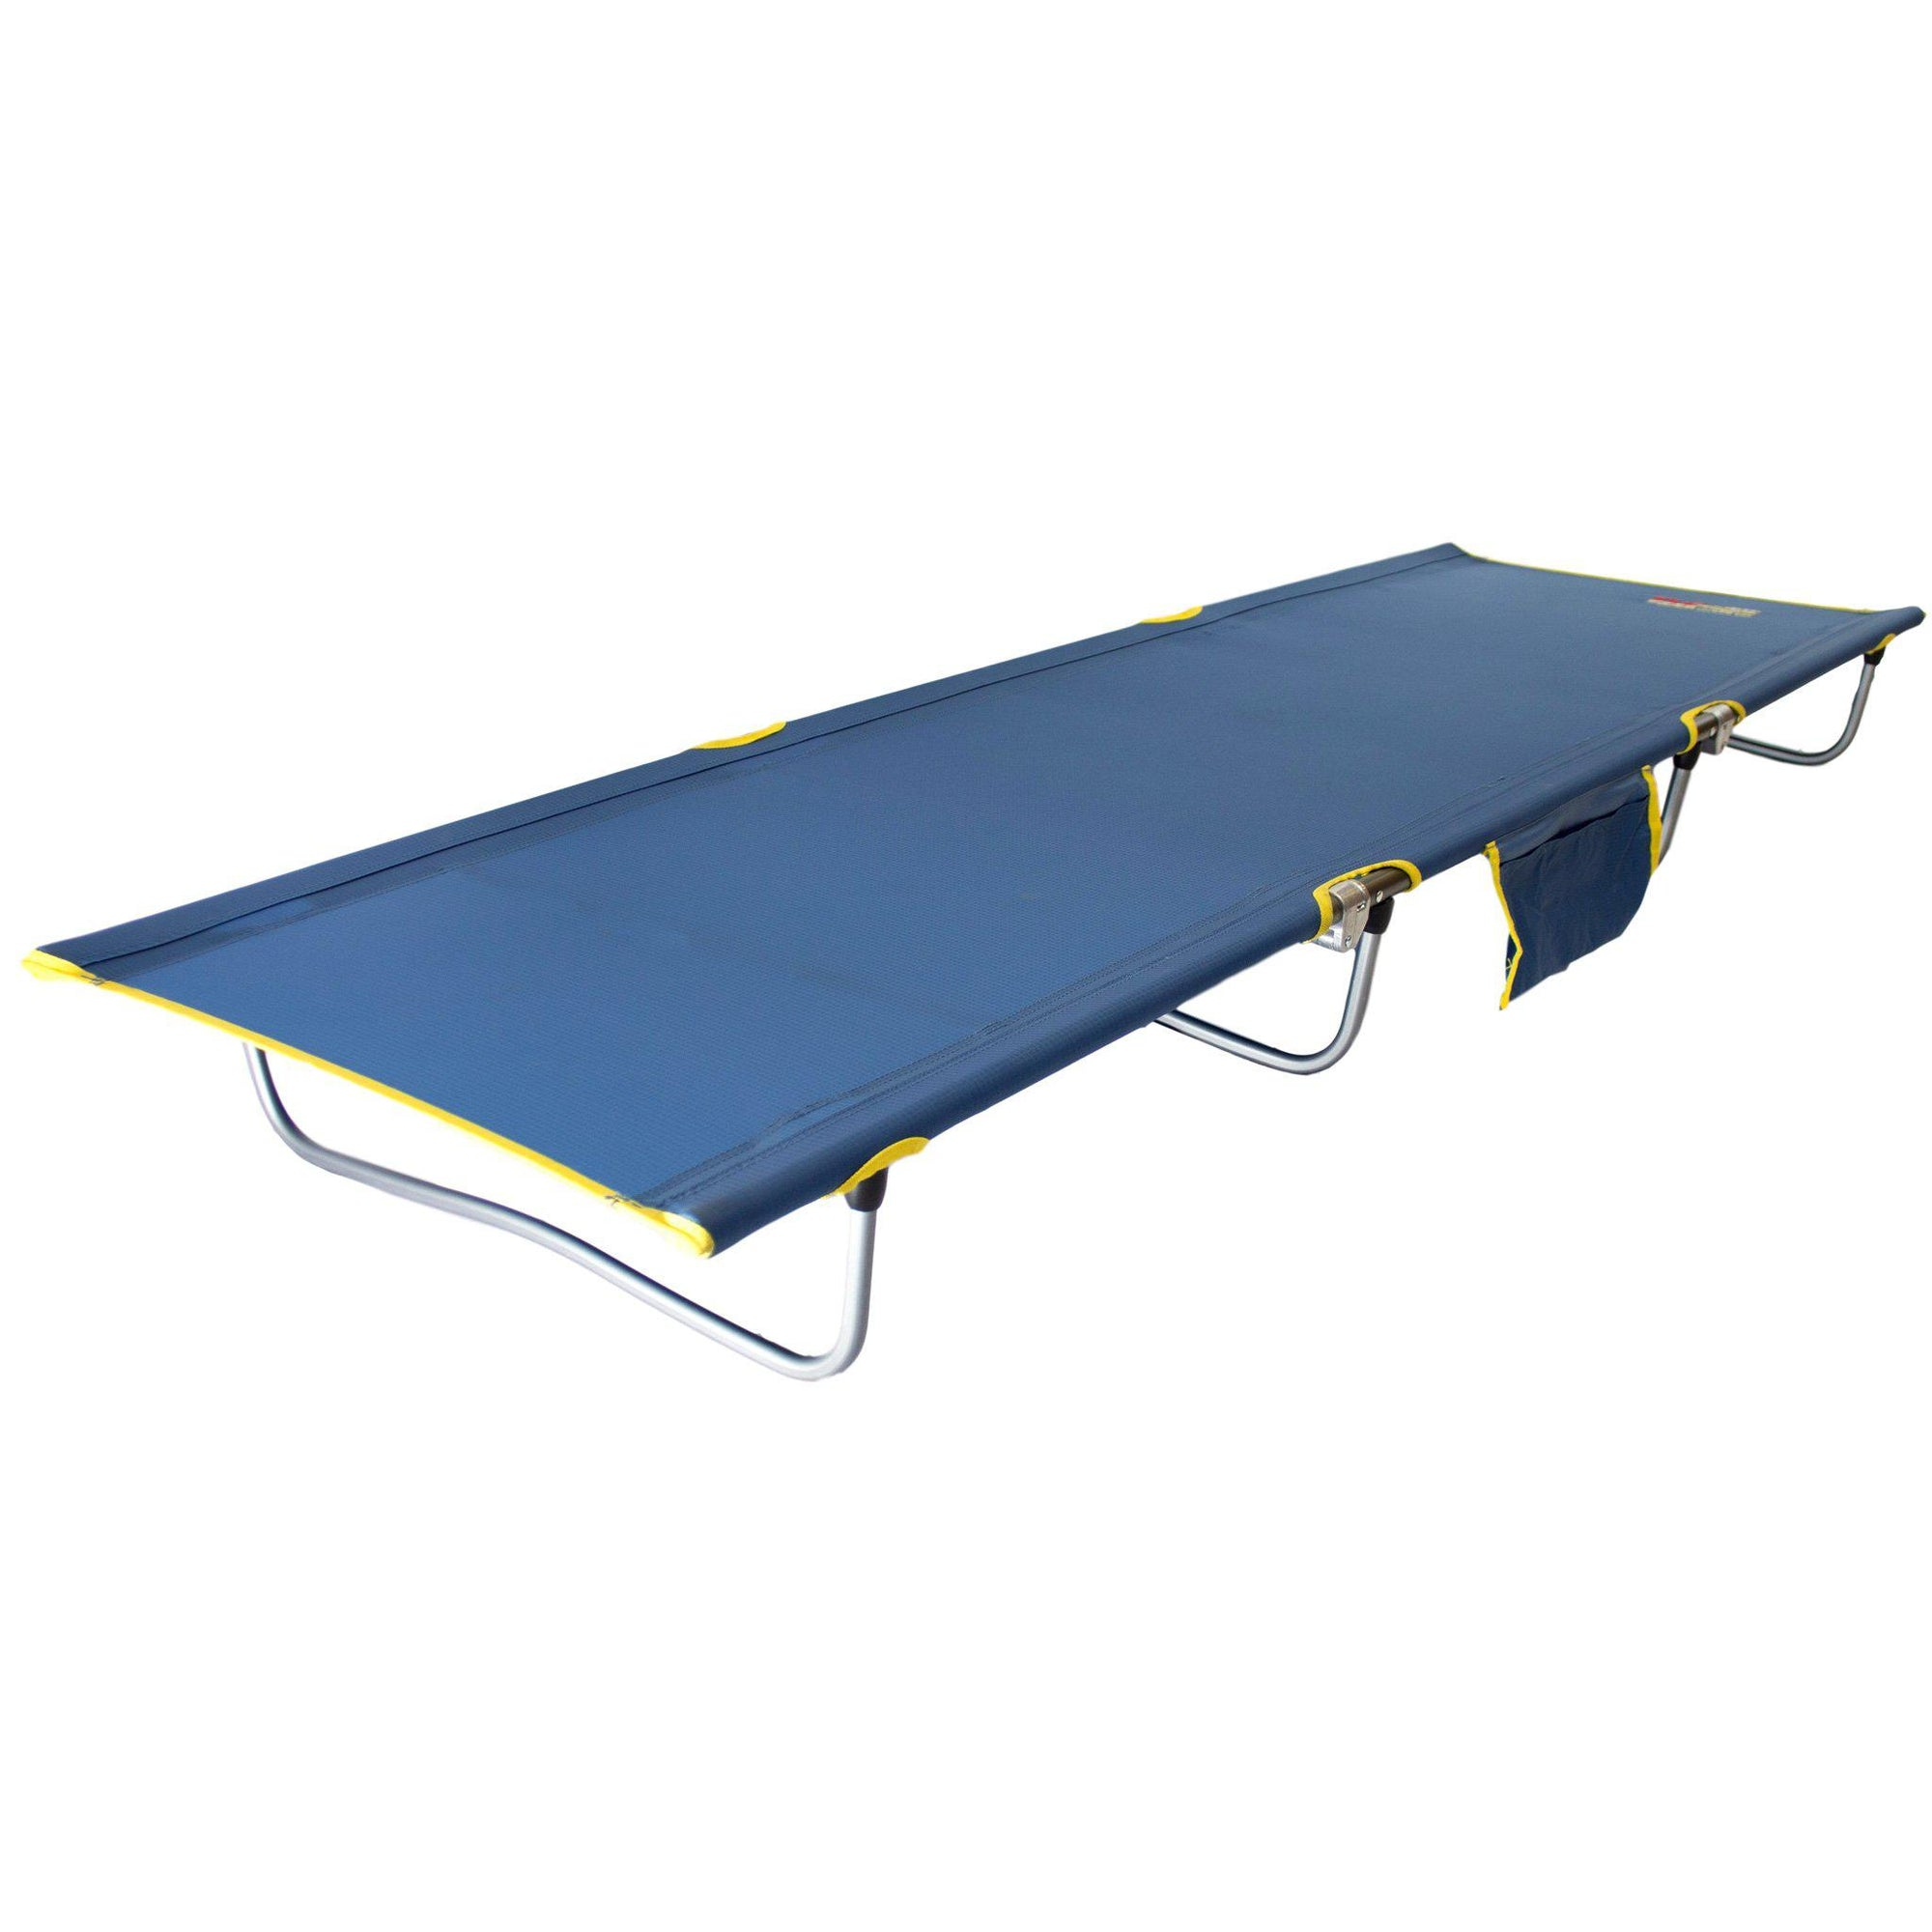 TriLite Cot 7000 Series, from Byer of Maine